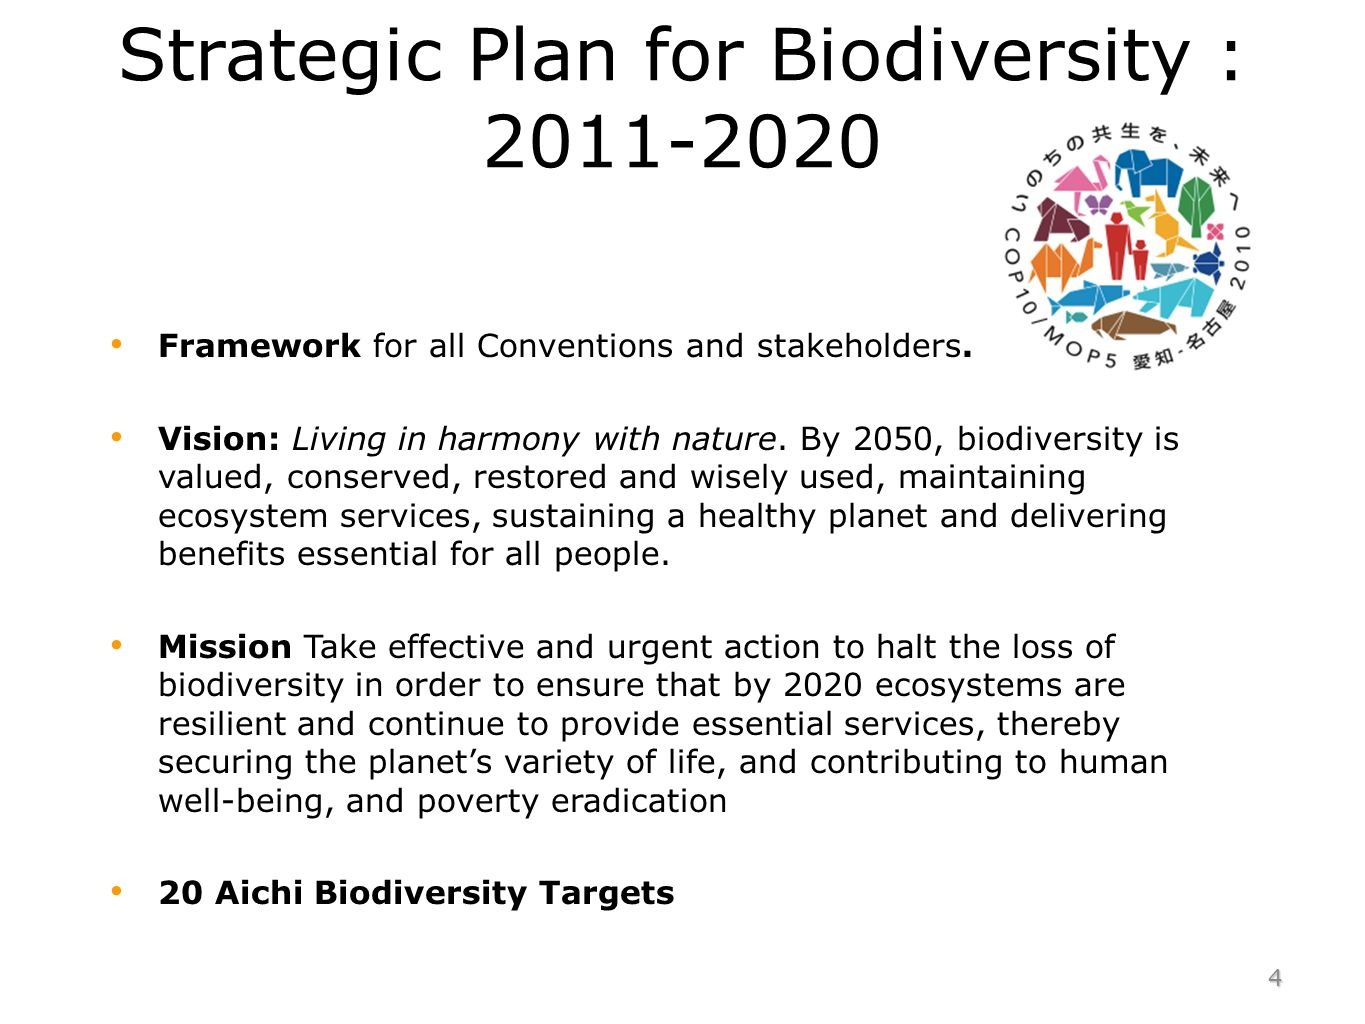 Strategic Plan for Biodiversity : 2011-2020 Framework for all Conventions and stakeholders. Vision: Living in harmony with nature. By 2050, biodiversi